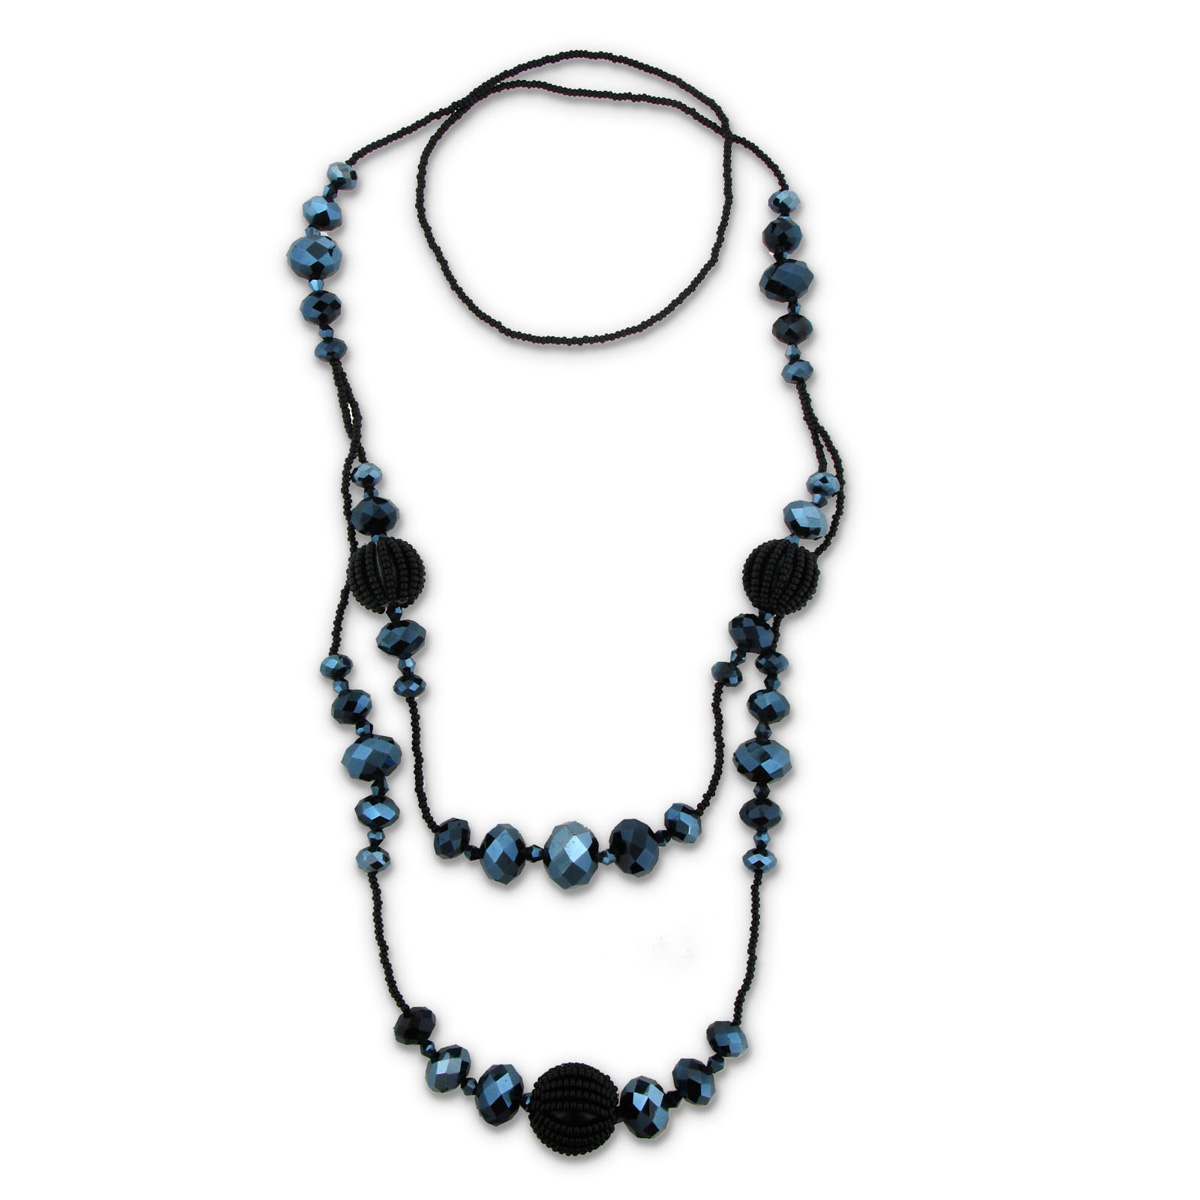 34 Inch Long Black Beaded Crystal Designer Necklace on Seed Chain